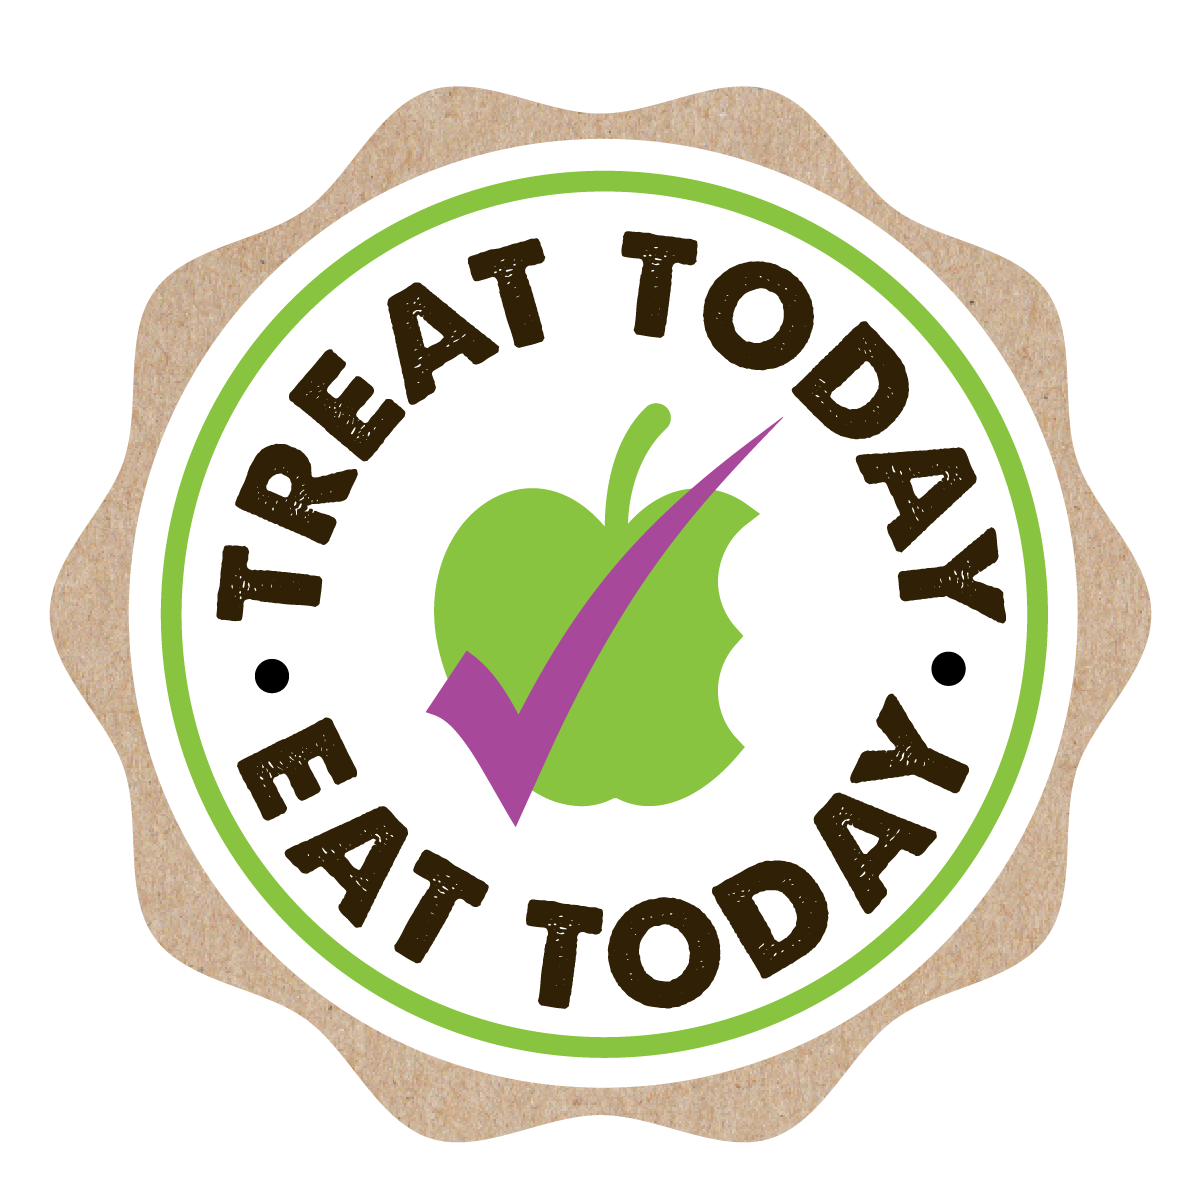 Treat Today, Eat Today.